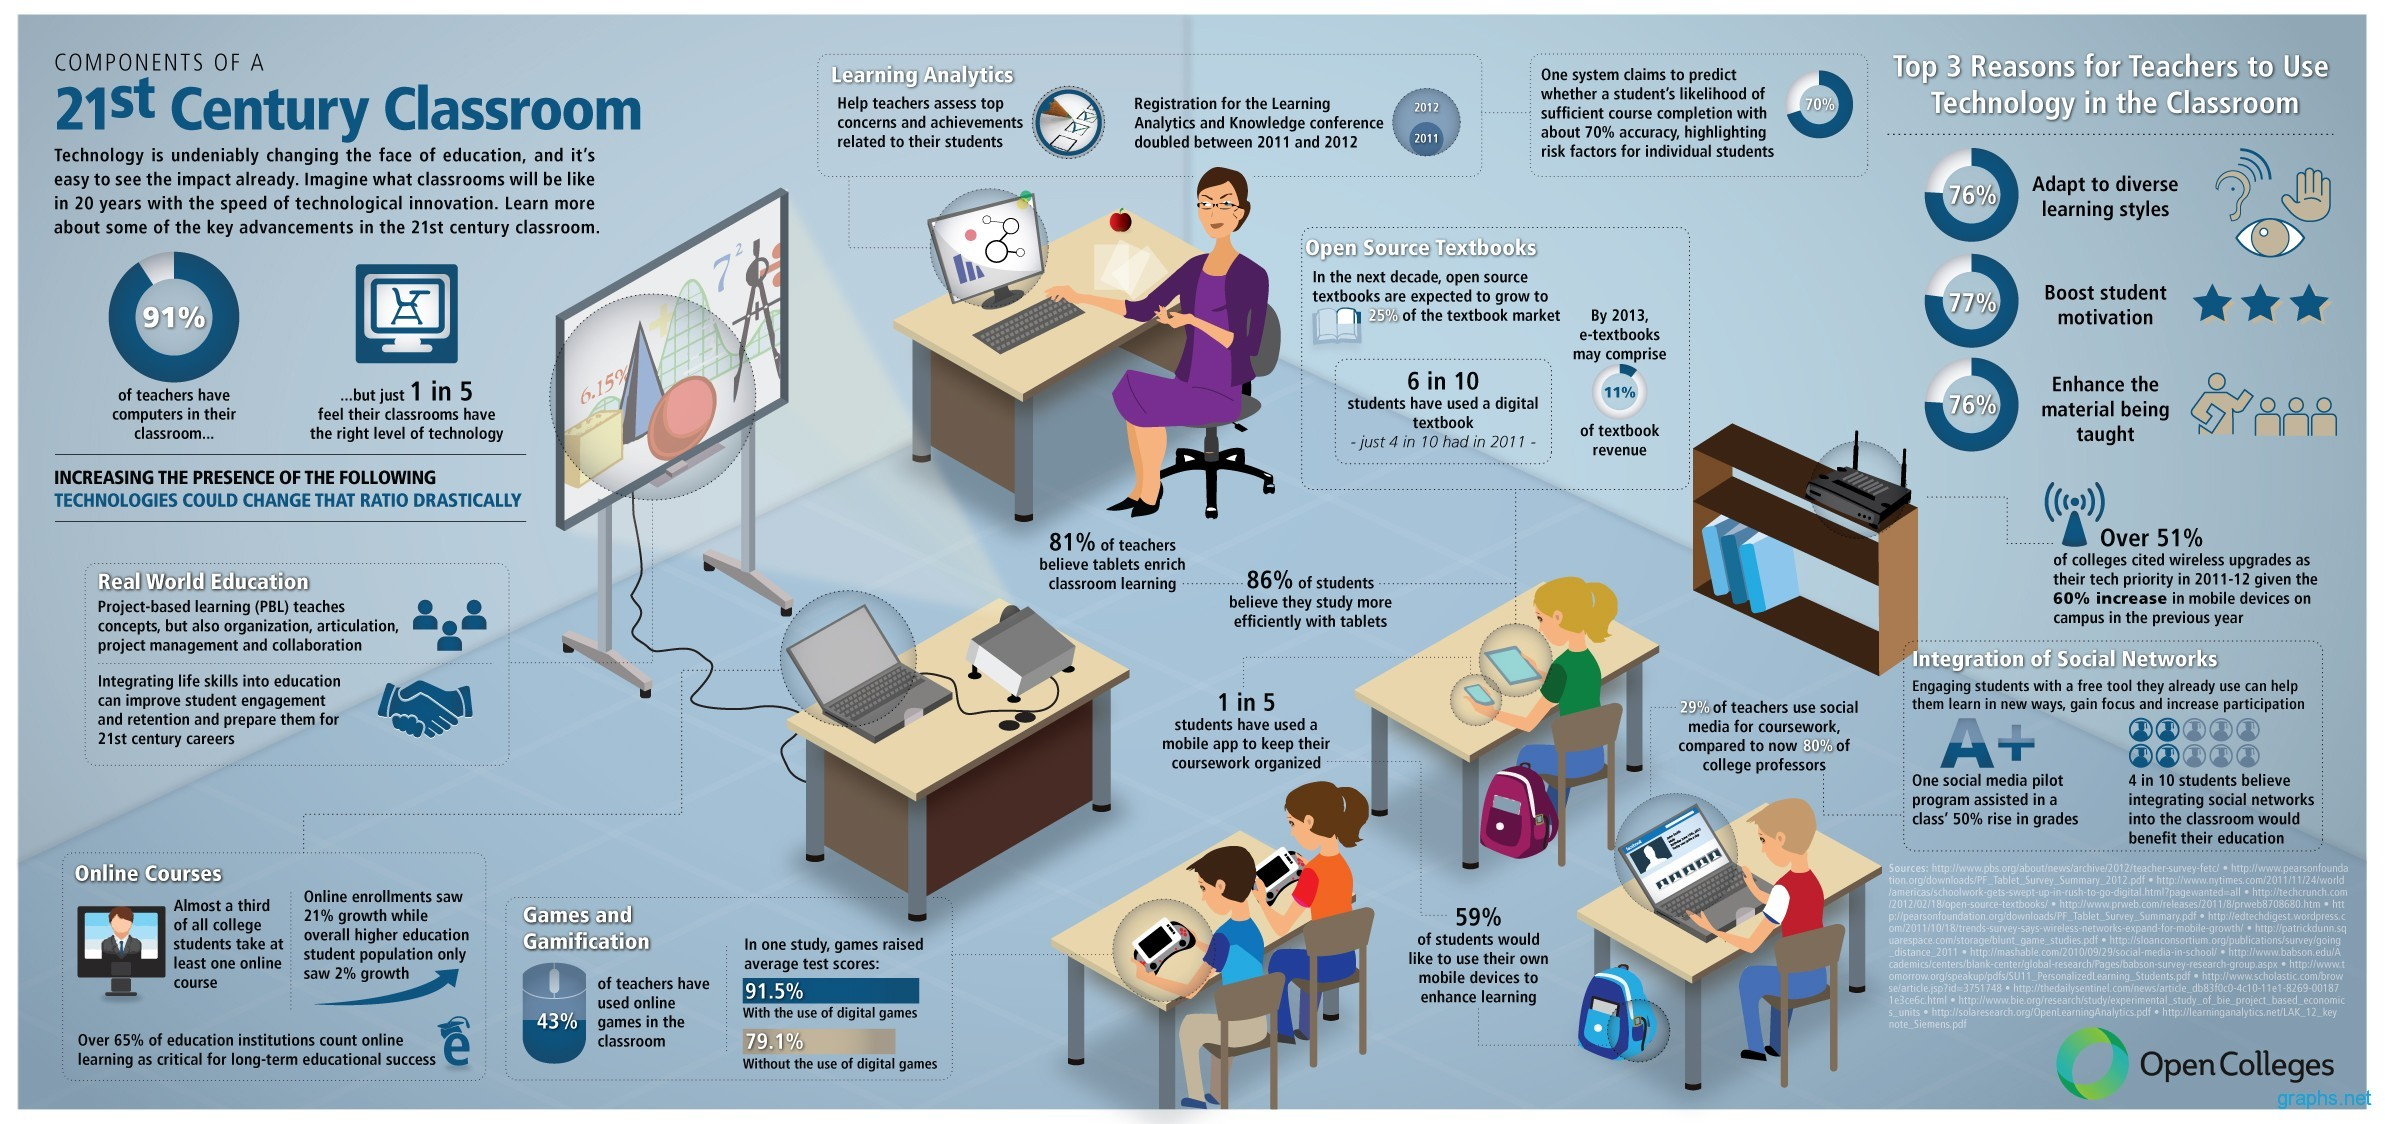 21st Century Classroom Components